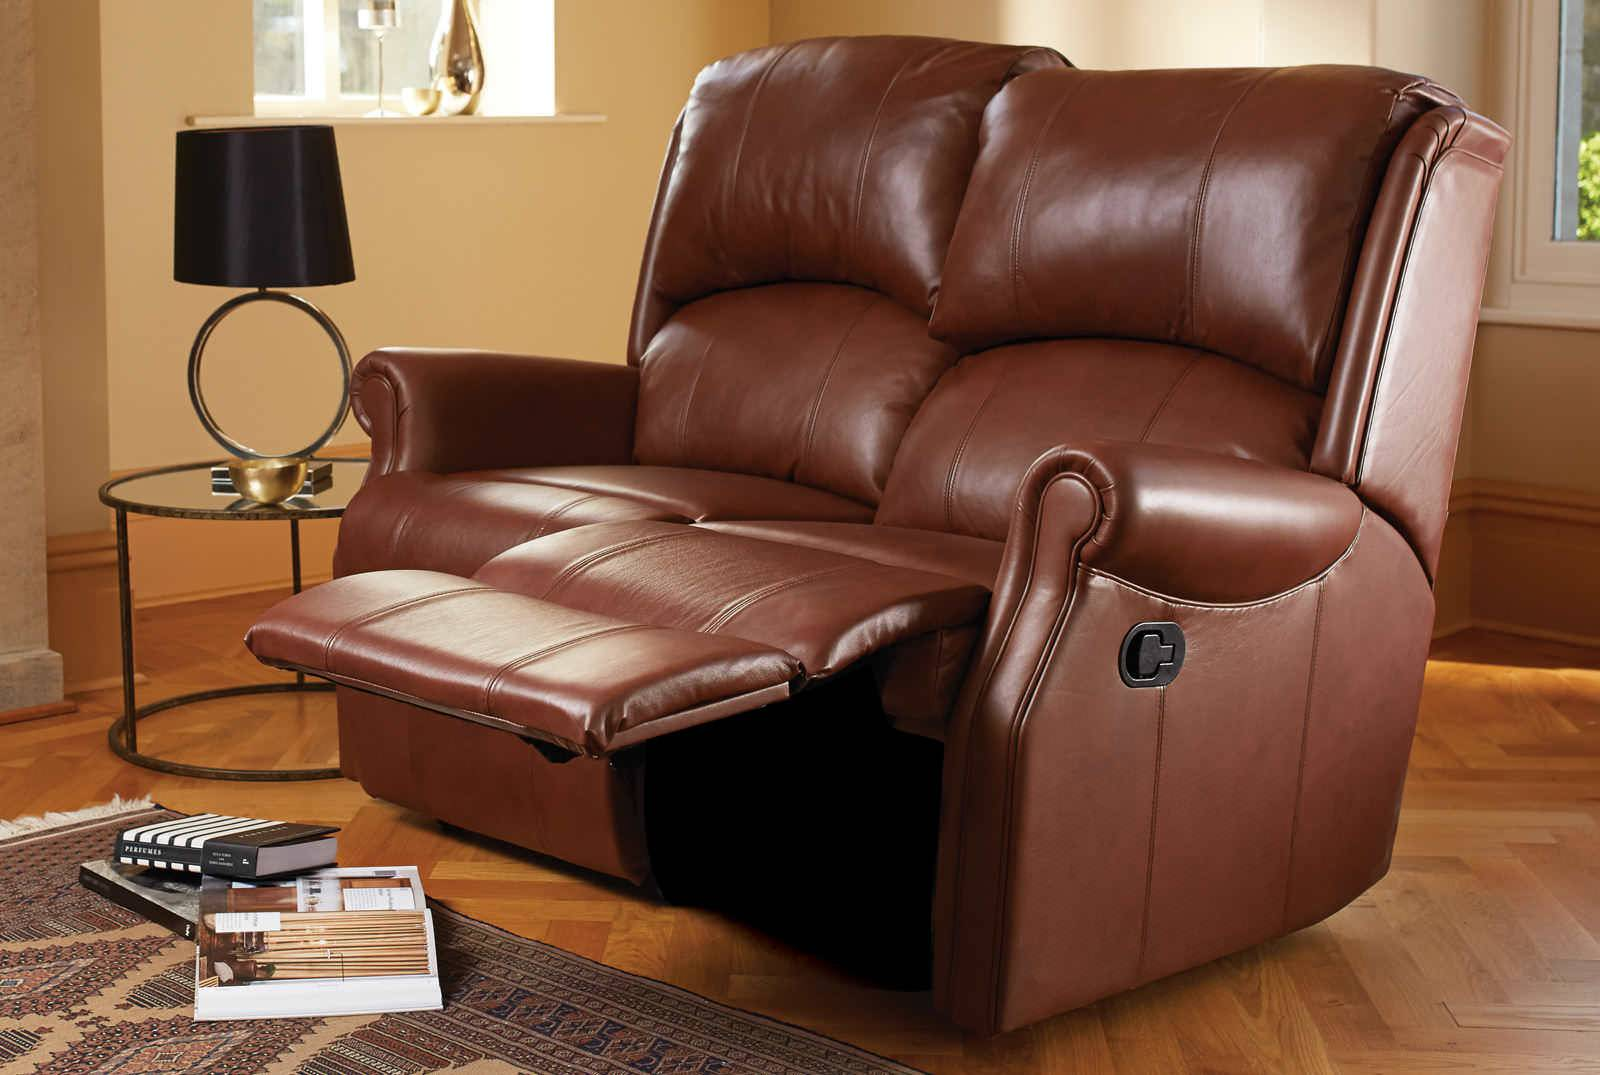 Merveilleux Recliner Couches. Berwick Two Seater Catch Recliner Sofa In New England  Teak Couches